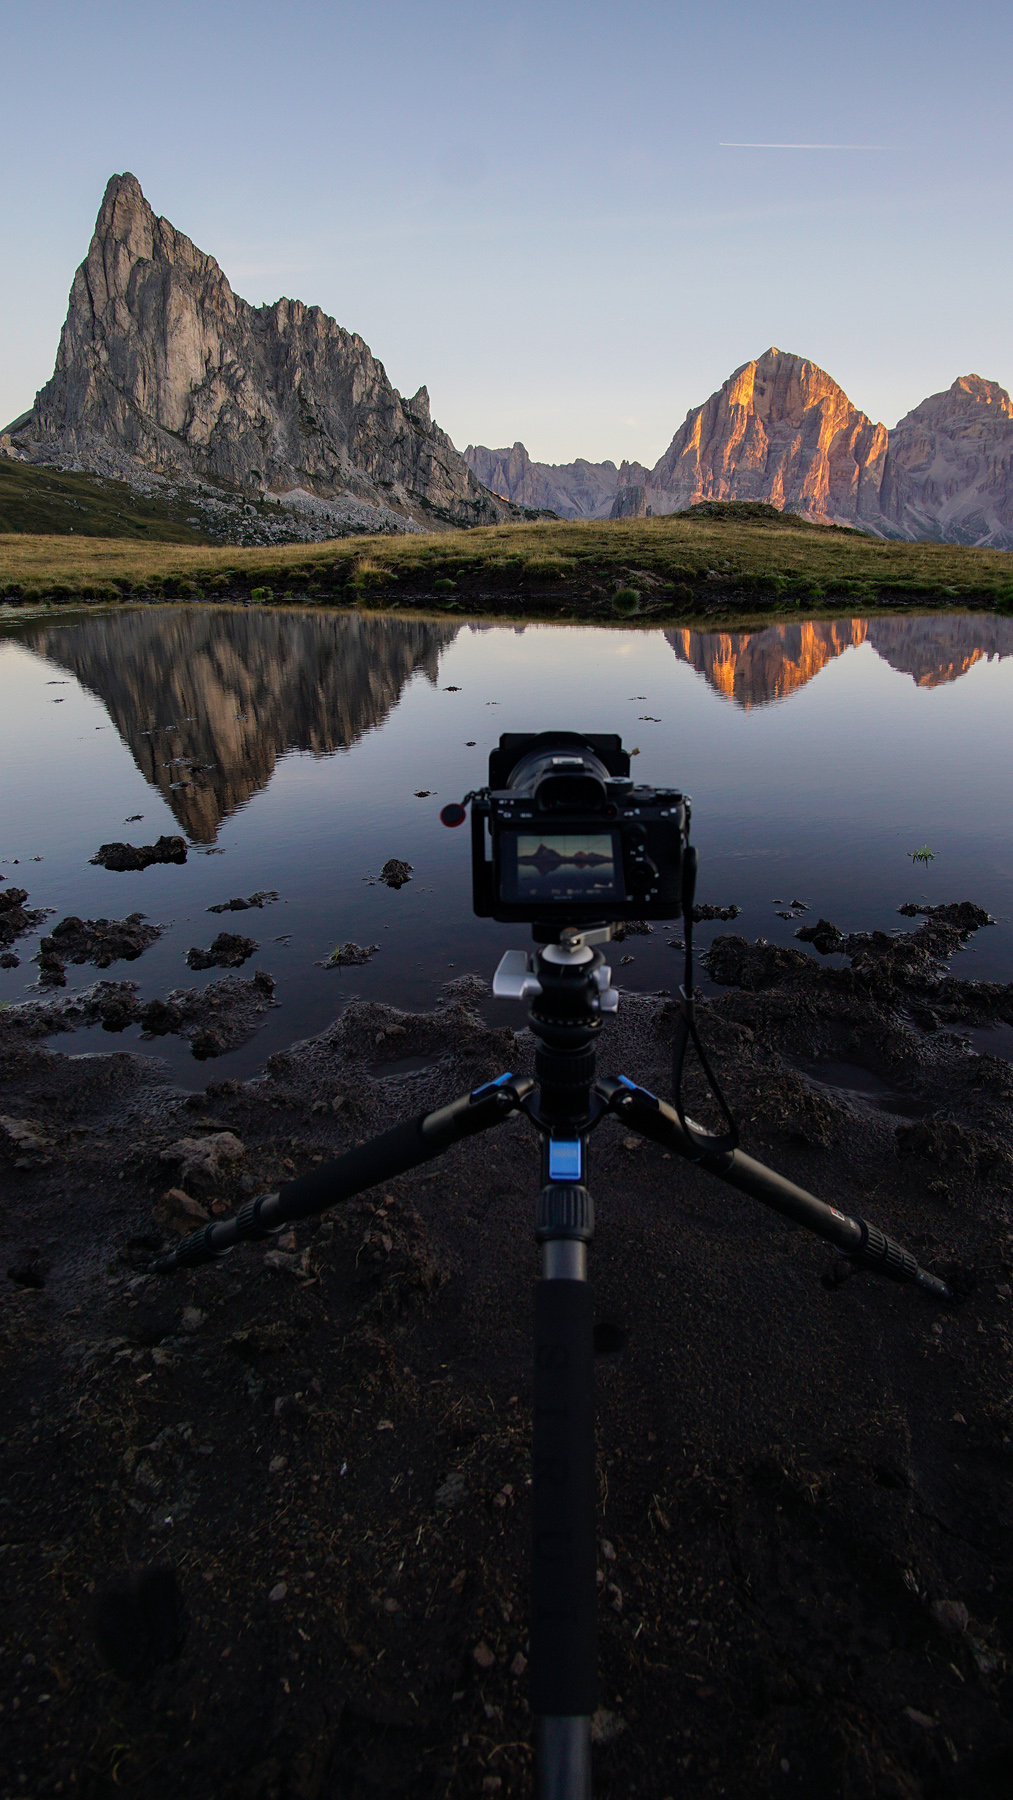 always with me: a set of filters. Here on location at Passo Giau, Italy.